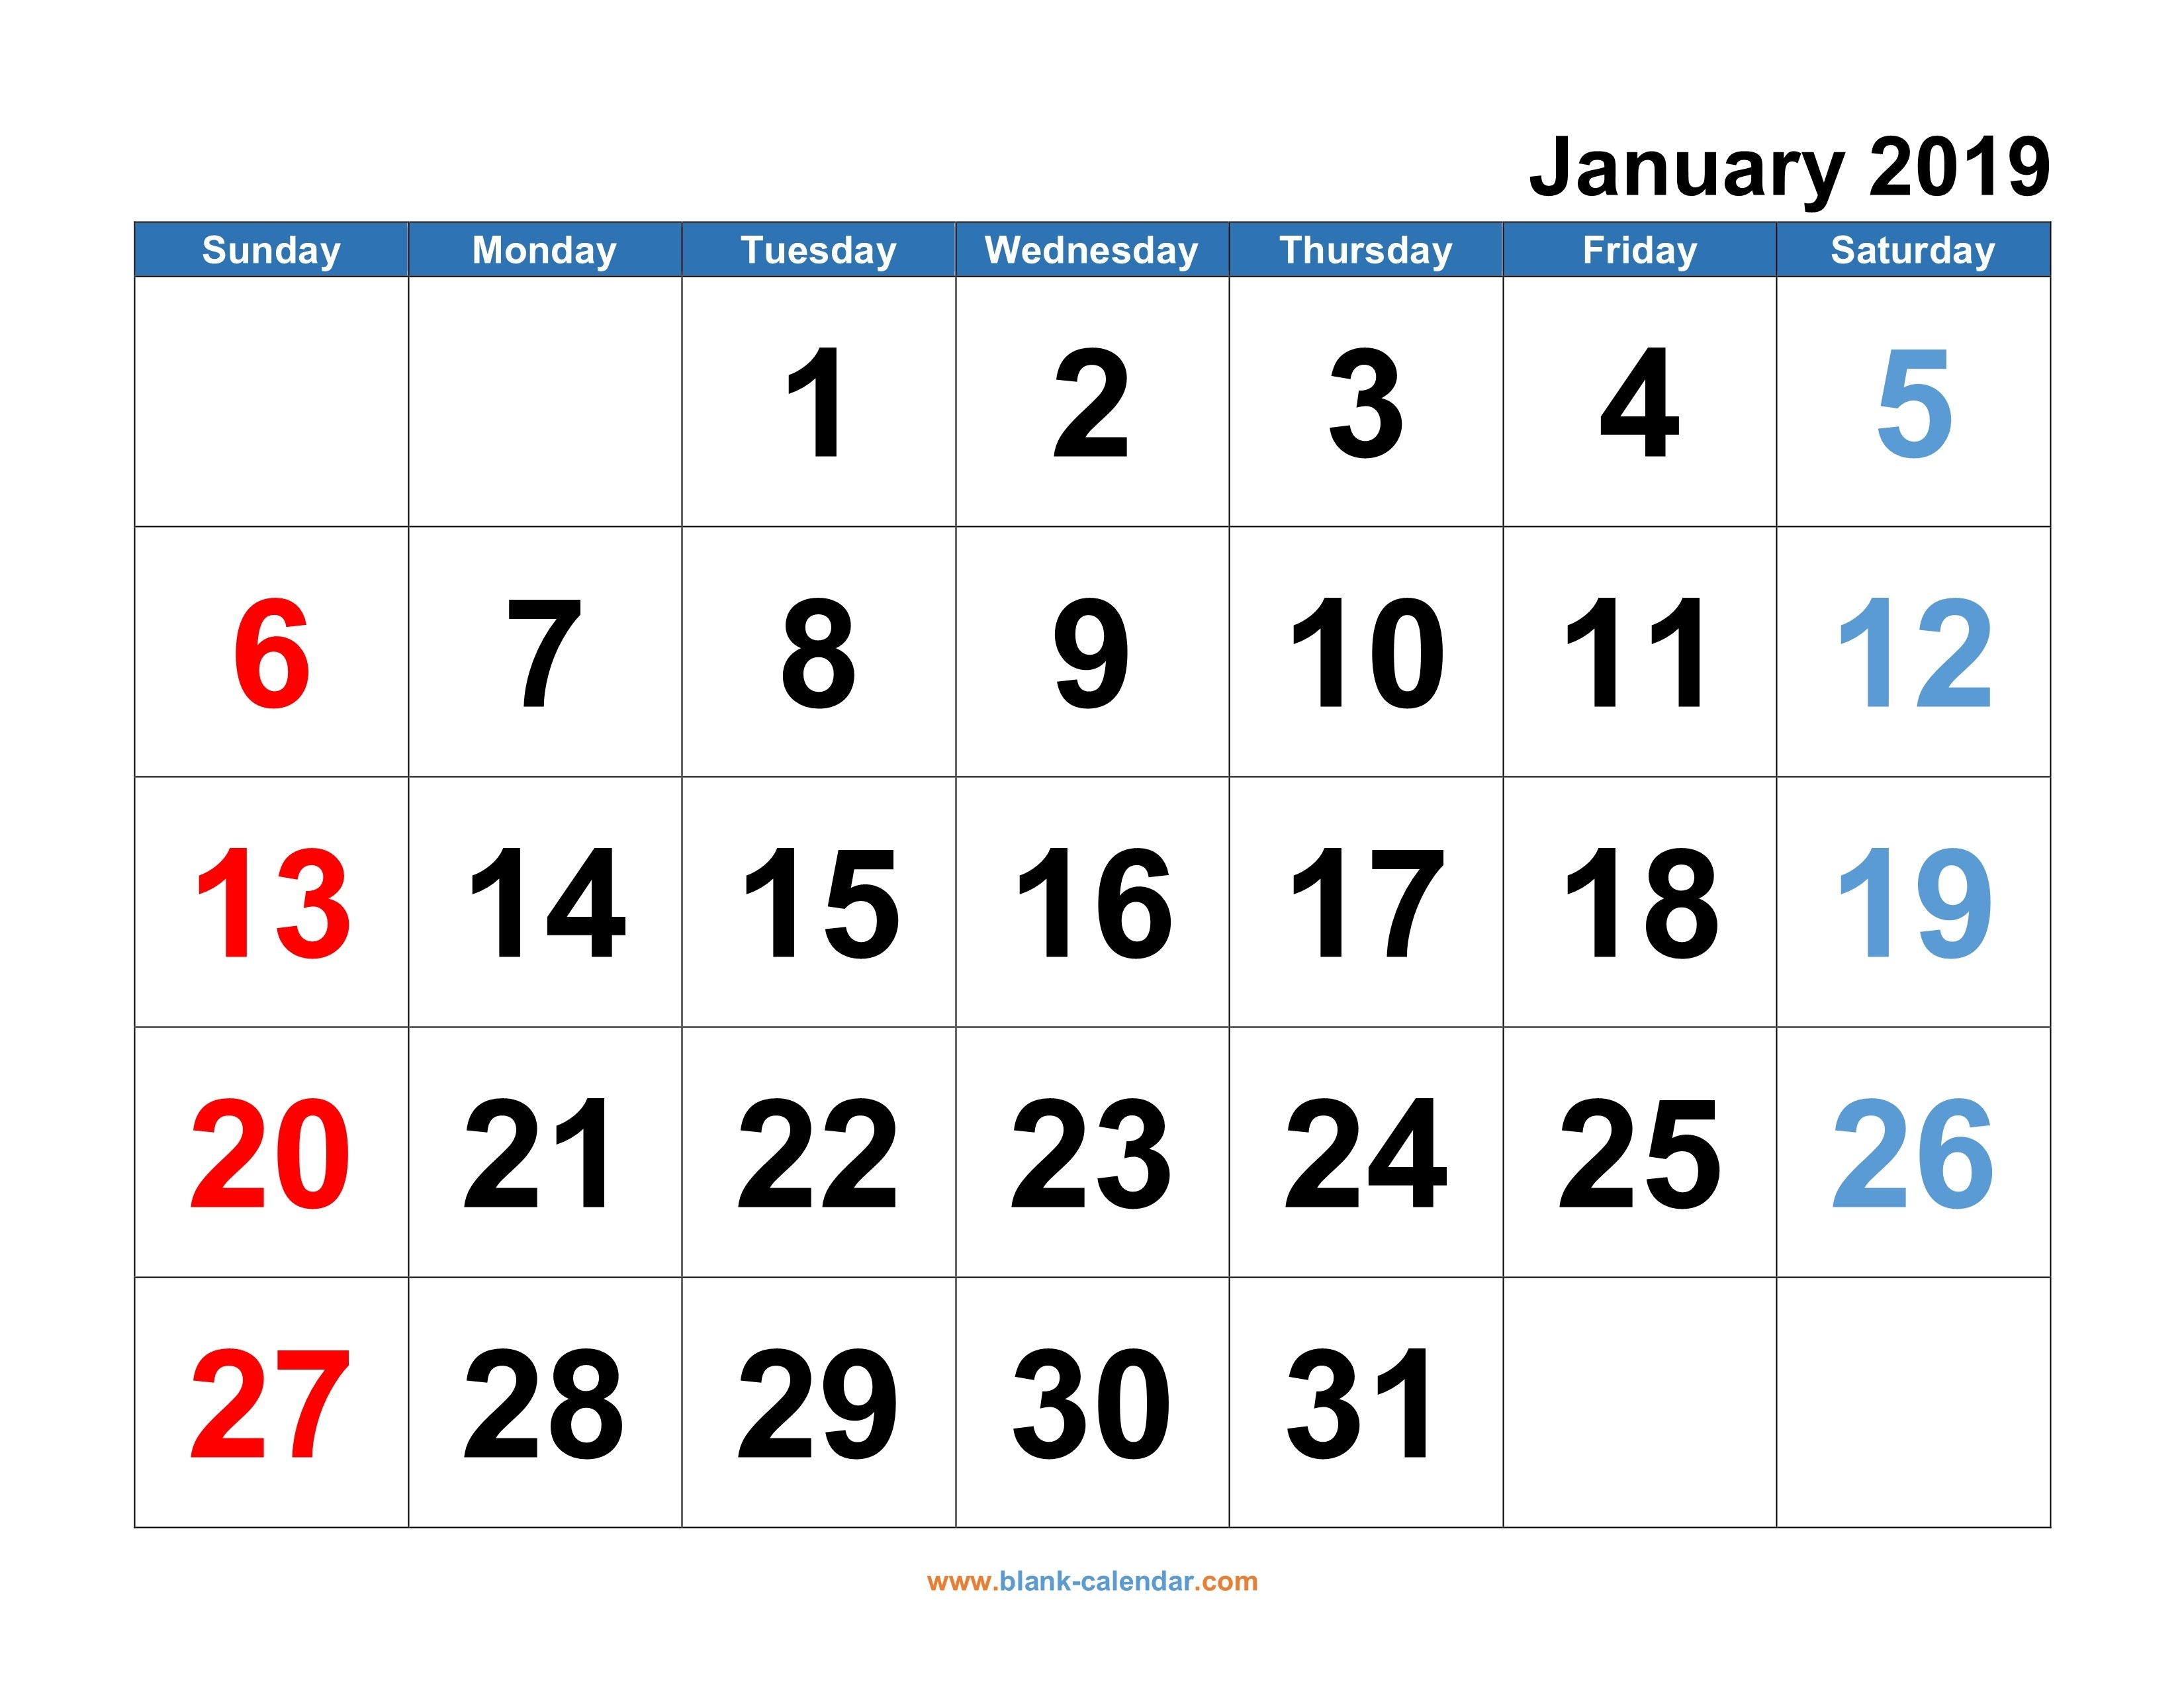 Monthly Calendar 2019   Free Download, Editable And Printable-Monthly Calendar That Can Be Edited